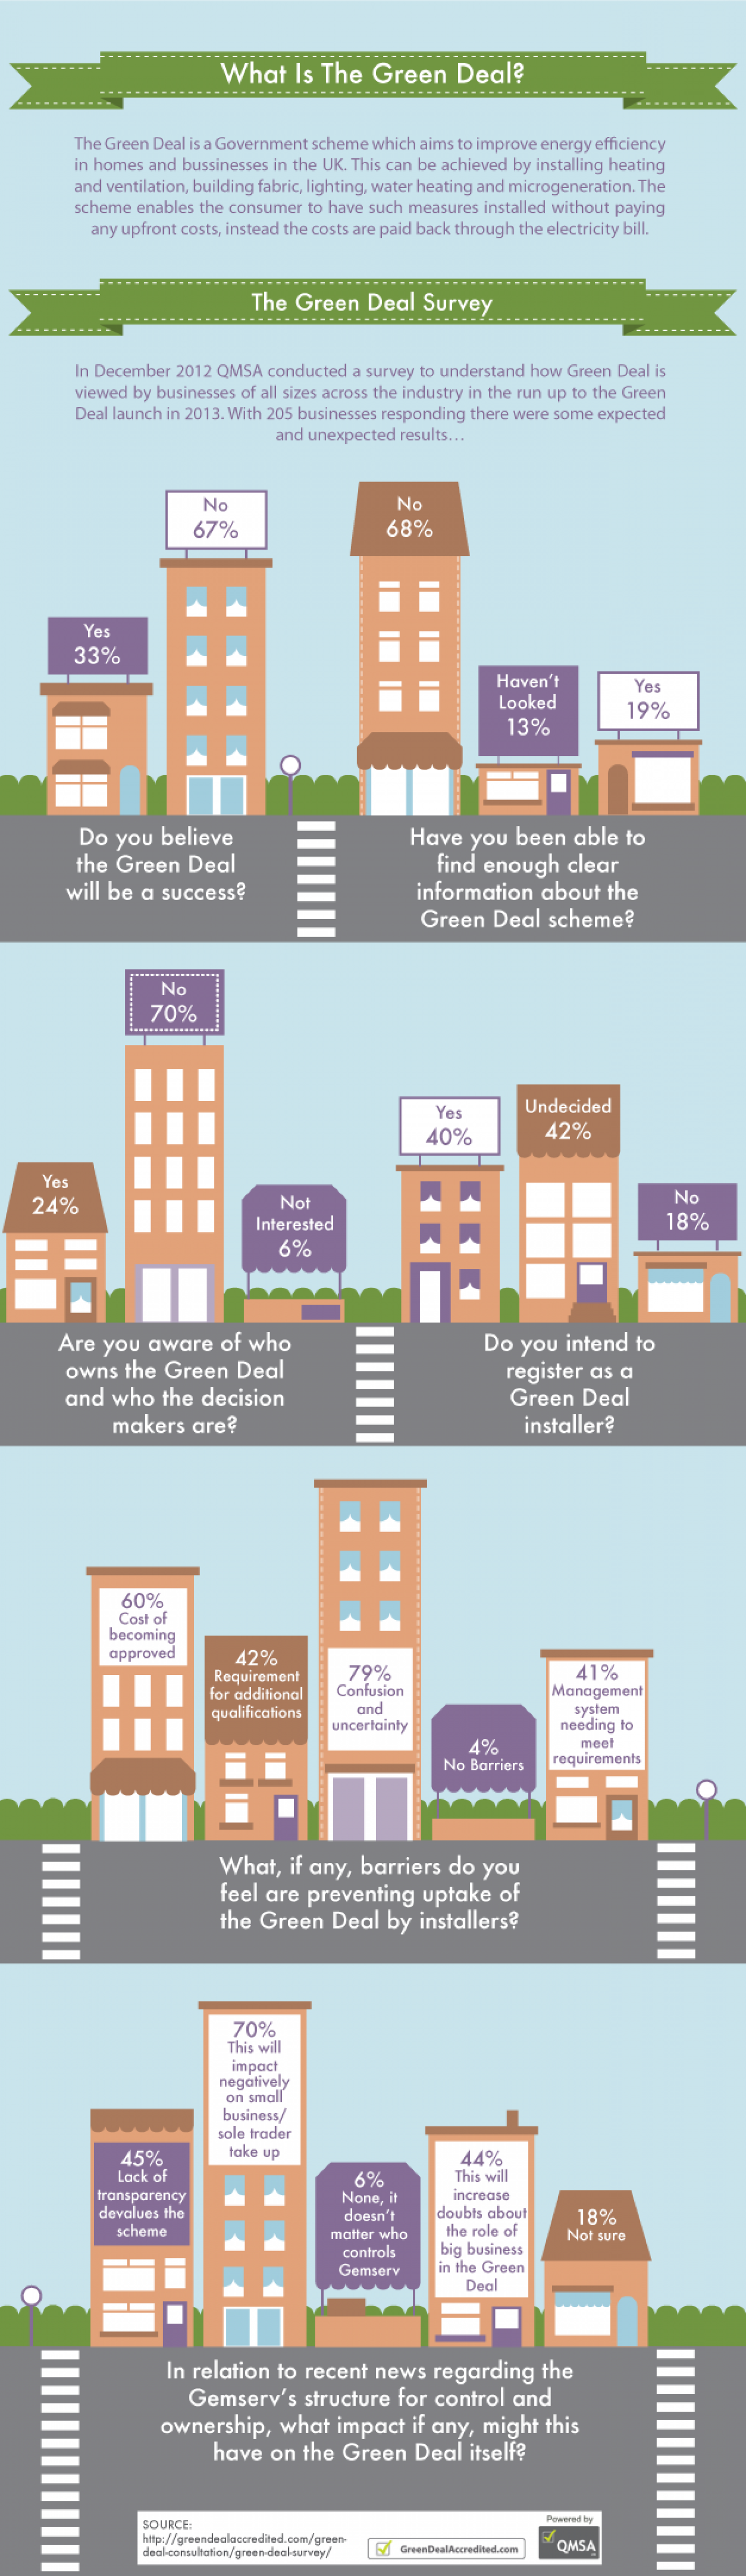 What Is the Green Deal? Infographic